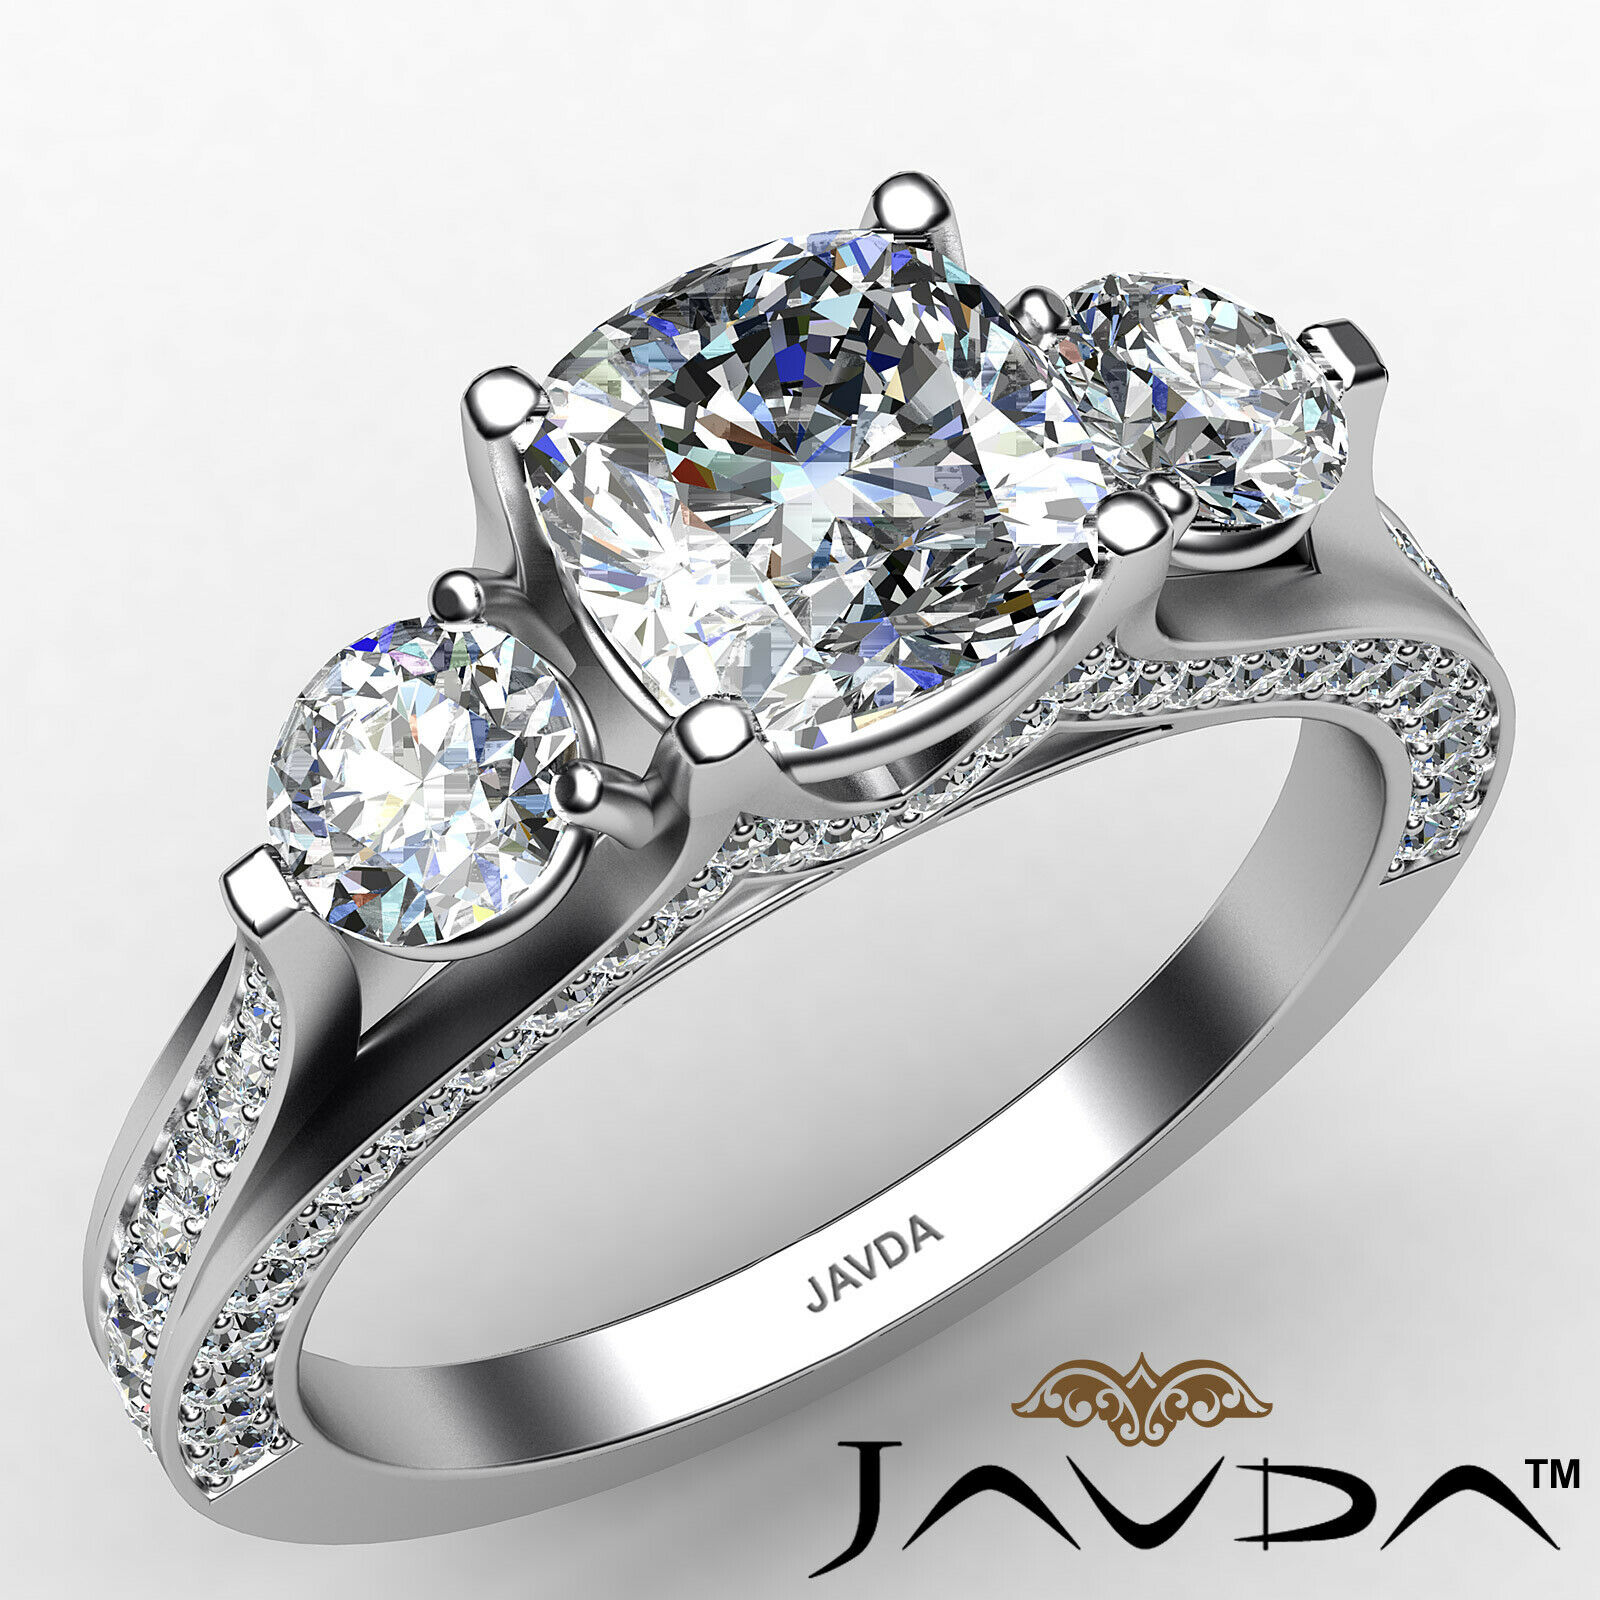 Cushion Diamond Engagement Ring Certified by GIA E Color & VVS1 clarity 2.1 ctw